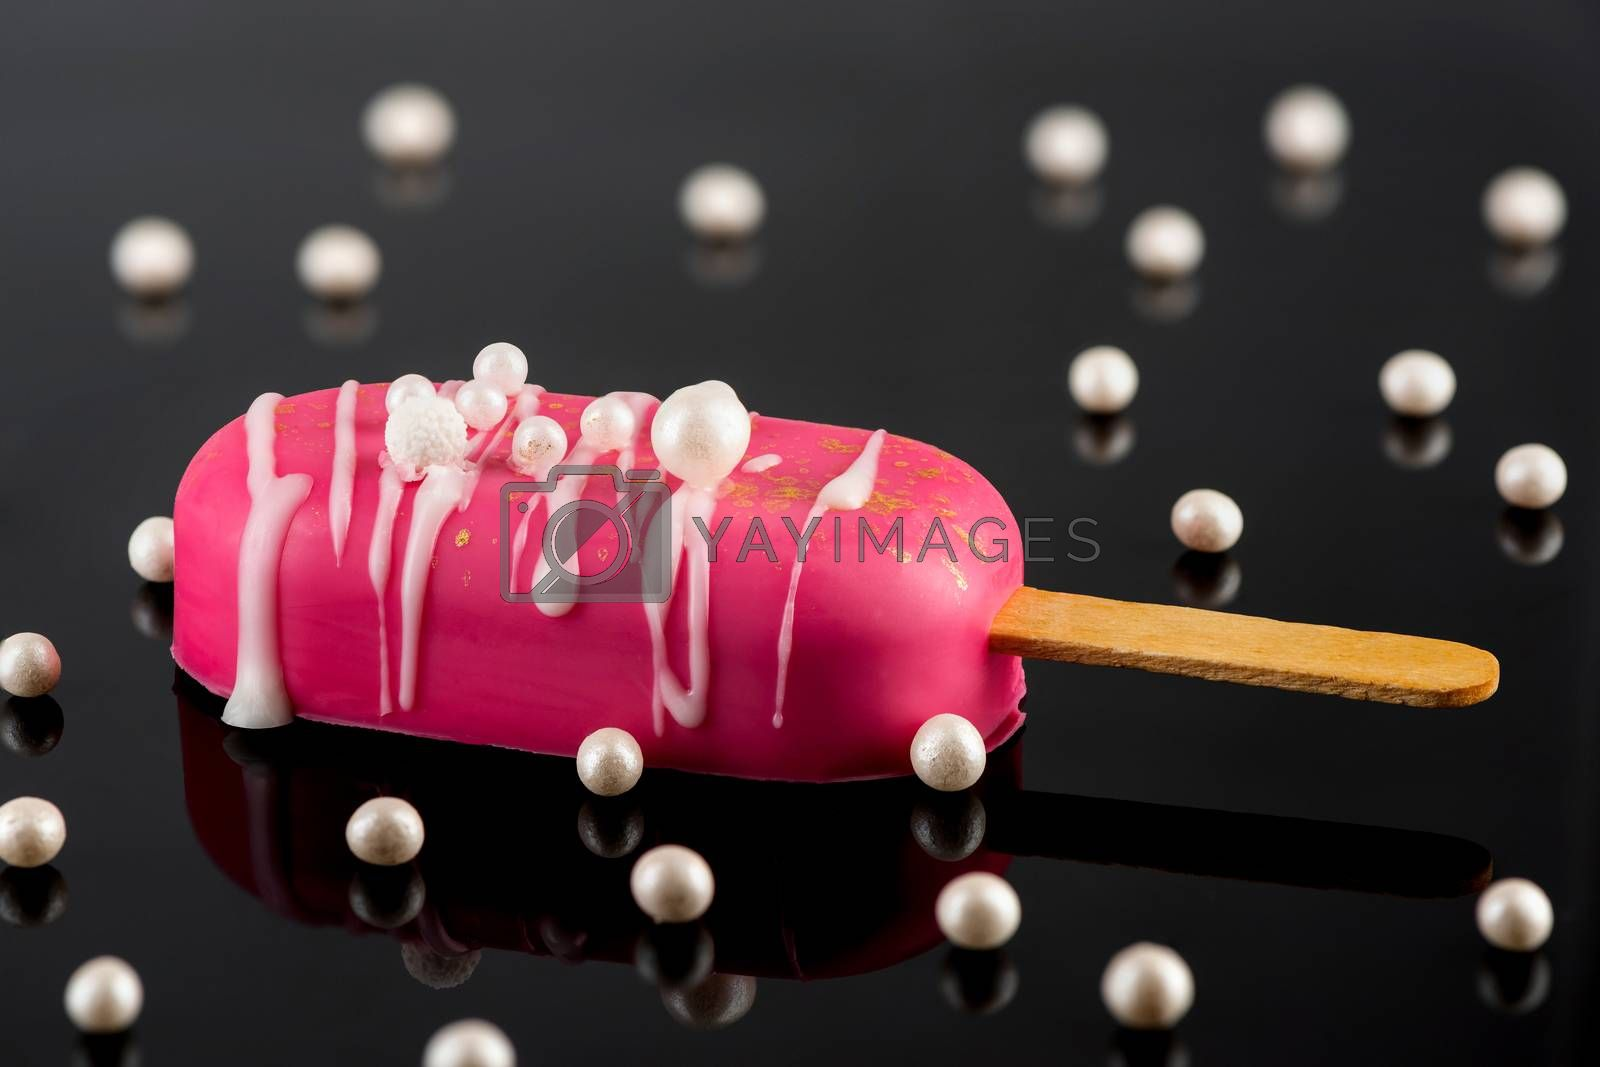 Pink Chocolate Popsicle on Dark Reflective Background. Creative Party Food.